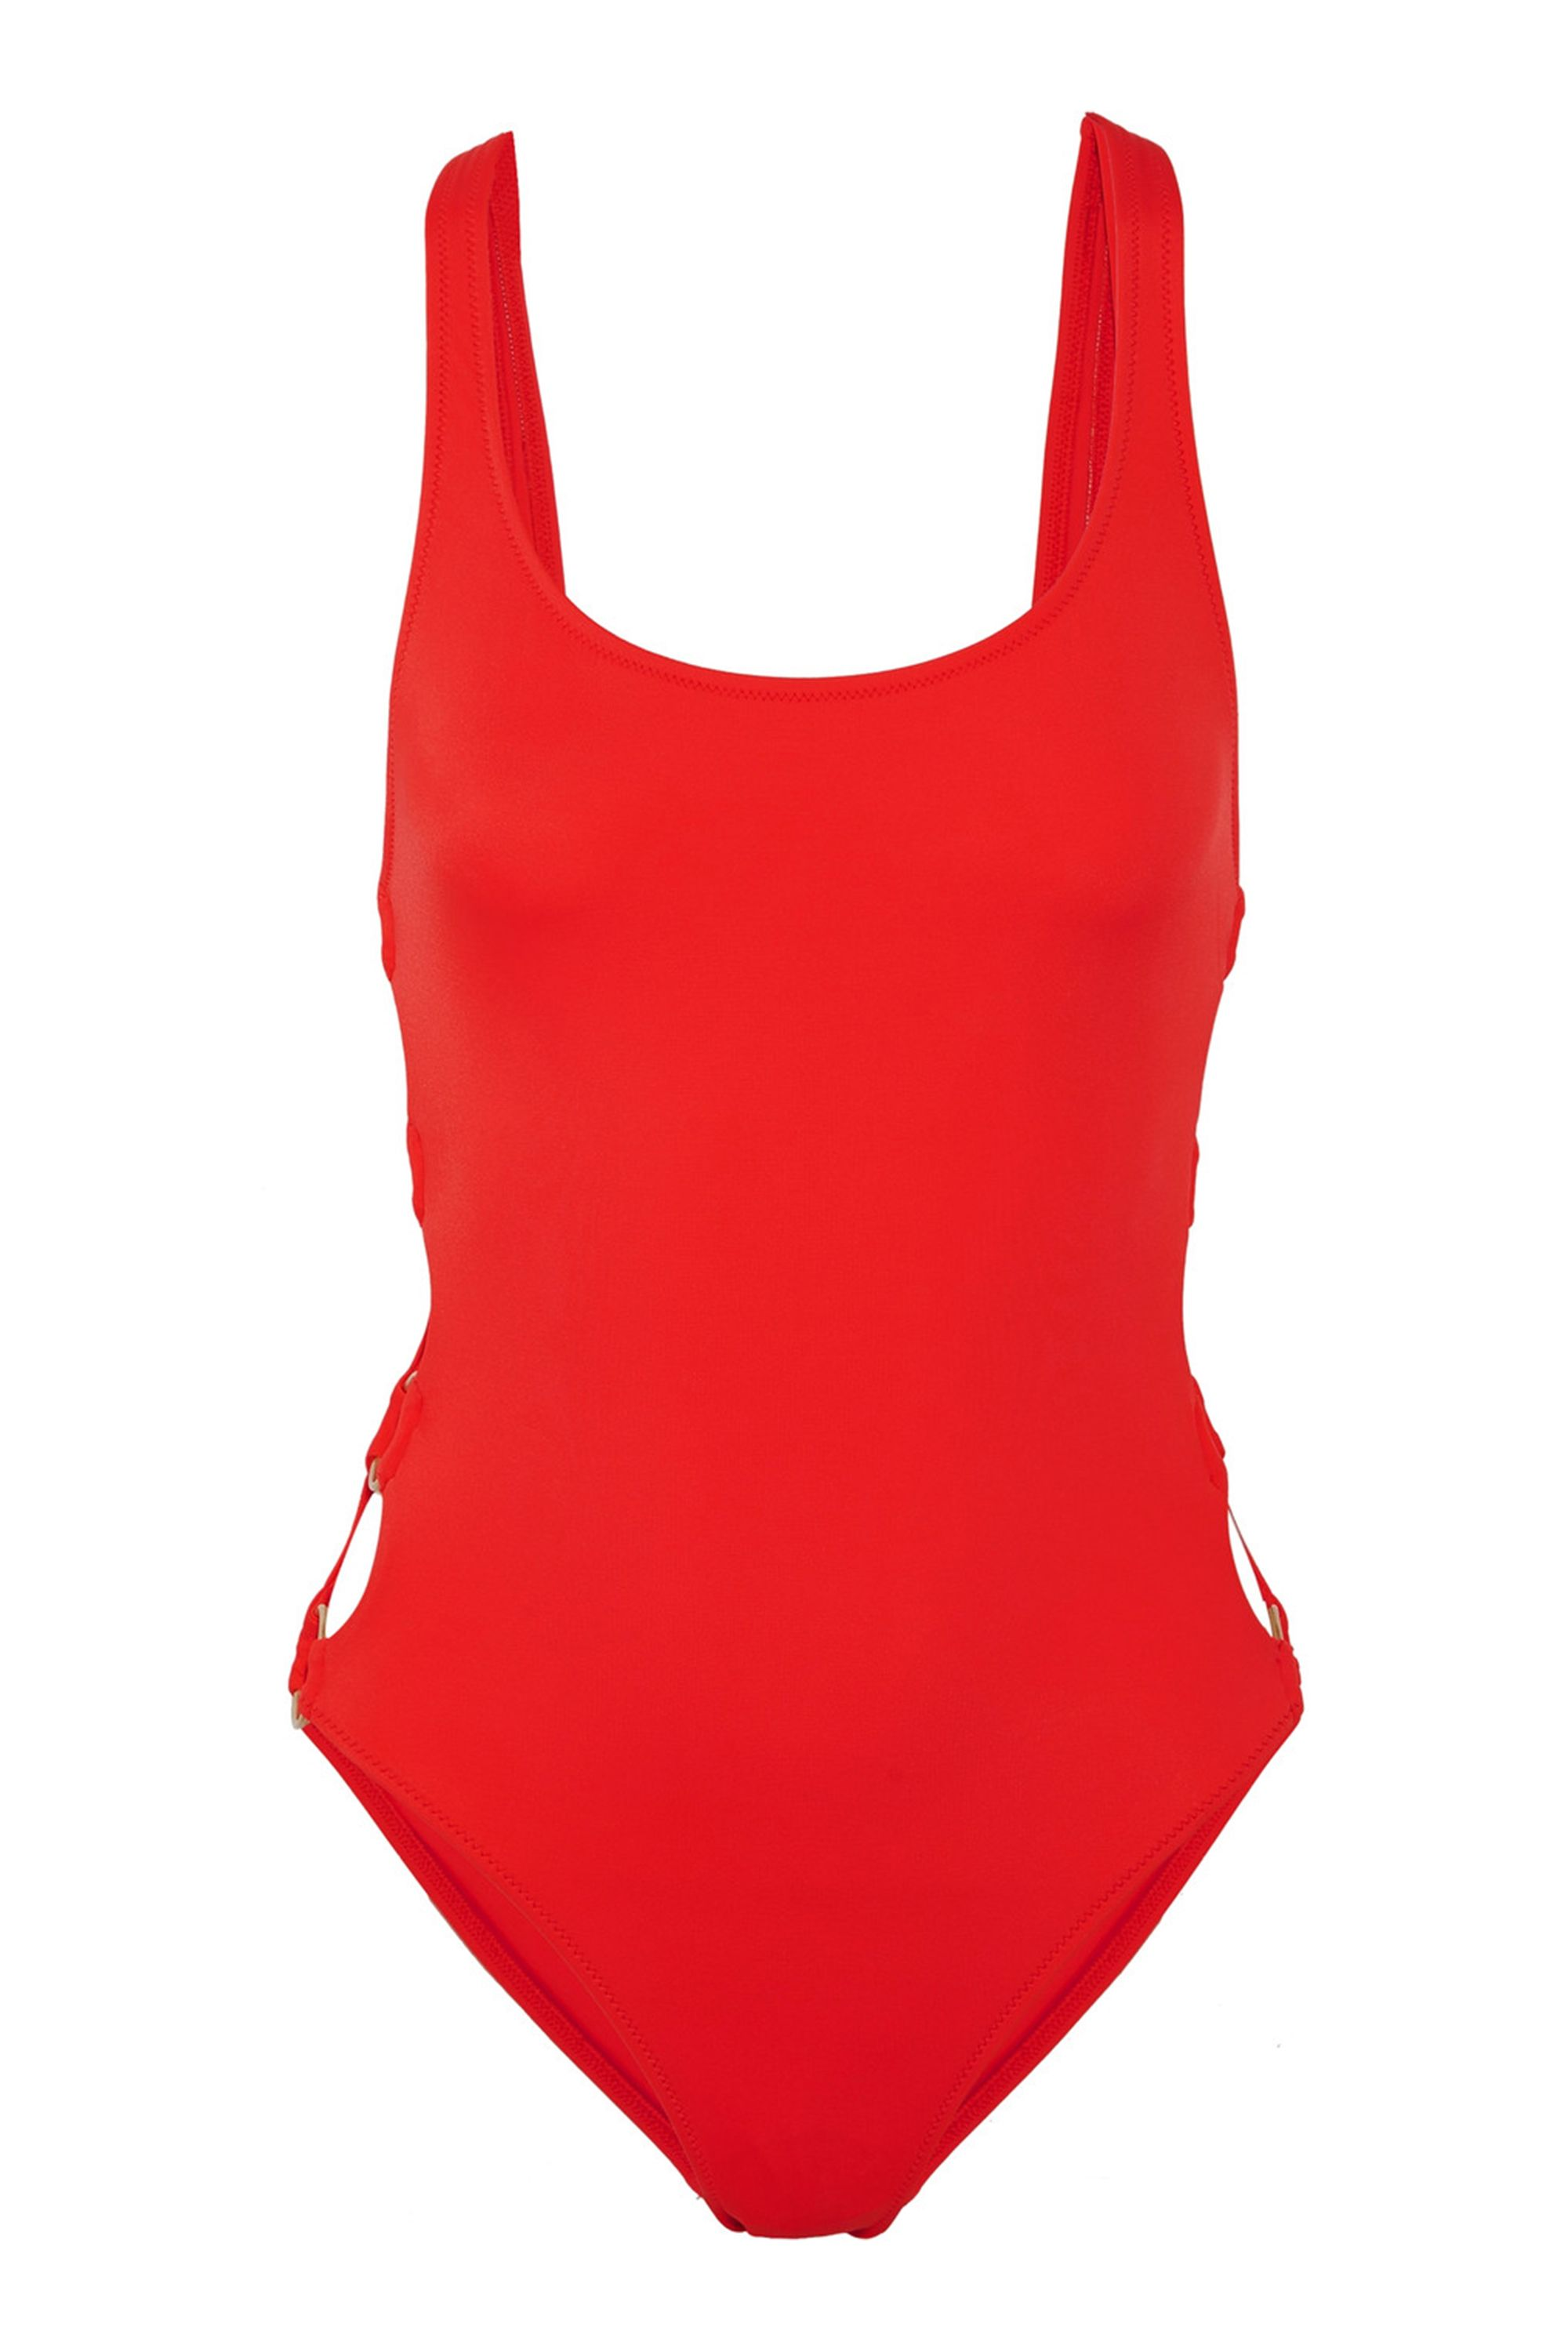 """<p> Solid and Striped The Jennifer Cutout Swimsuit, $160; <a href=""""https://www.net-a-porter.com/us/en/product/840174/Solid_and_Striped/the-jennifer-cutout-swimsuit"""" data-tracking-id=""""recirc-text-link"""" target=""""_blank"""">net-a-porter.com</a></p><p><span class=""""redactor-invisible-space"""" data-verified=""""redactor"""" data-redactor-tag=""""span"""" data-redactor-class=""""redactor-invisible-space""""></span></p>"""